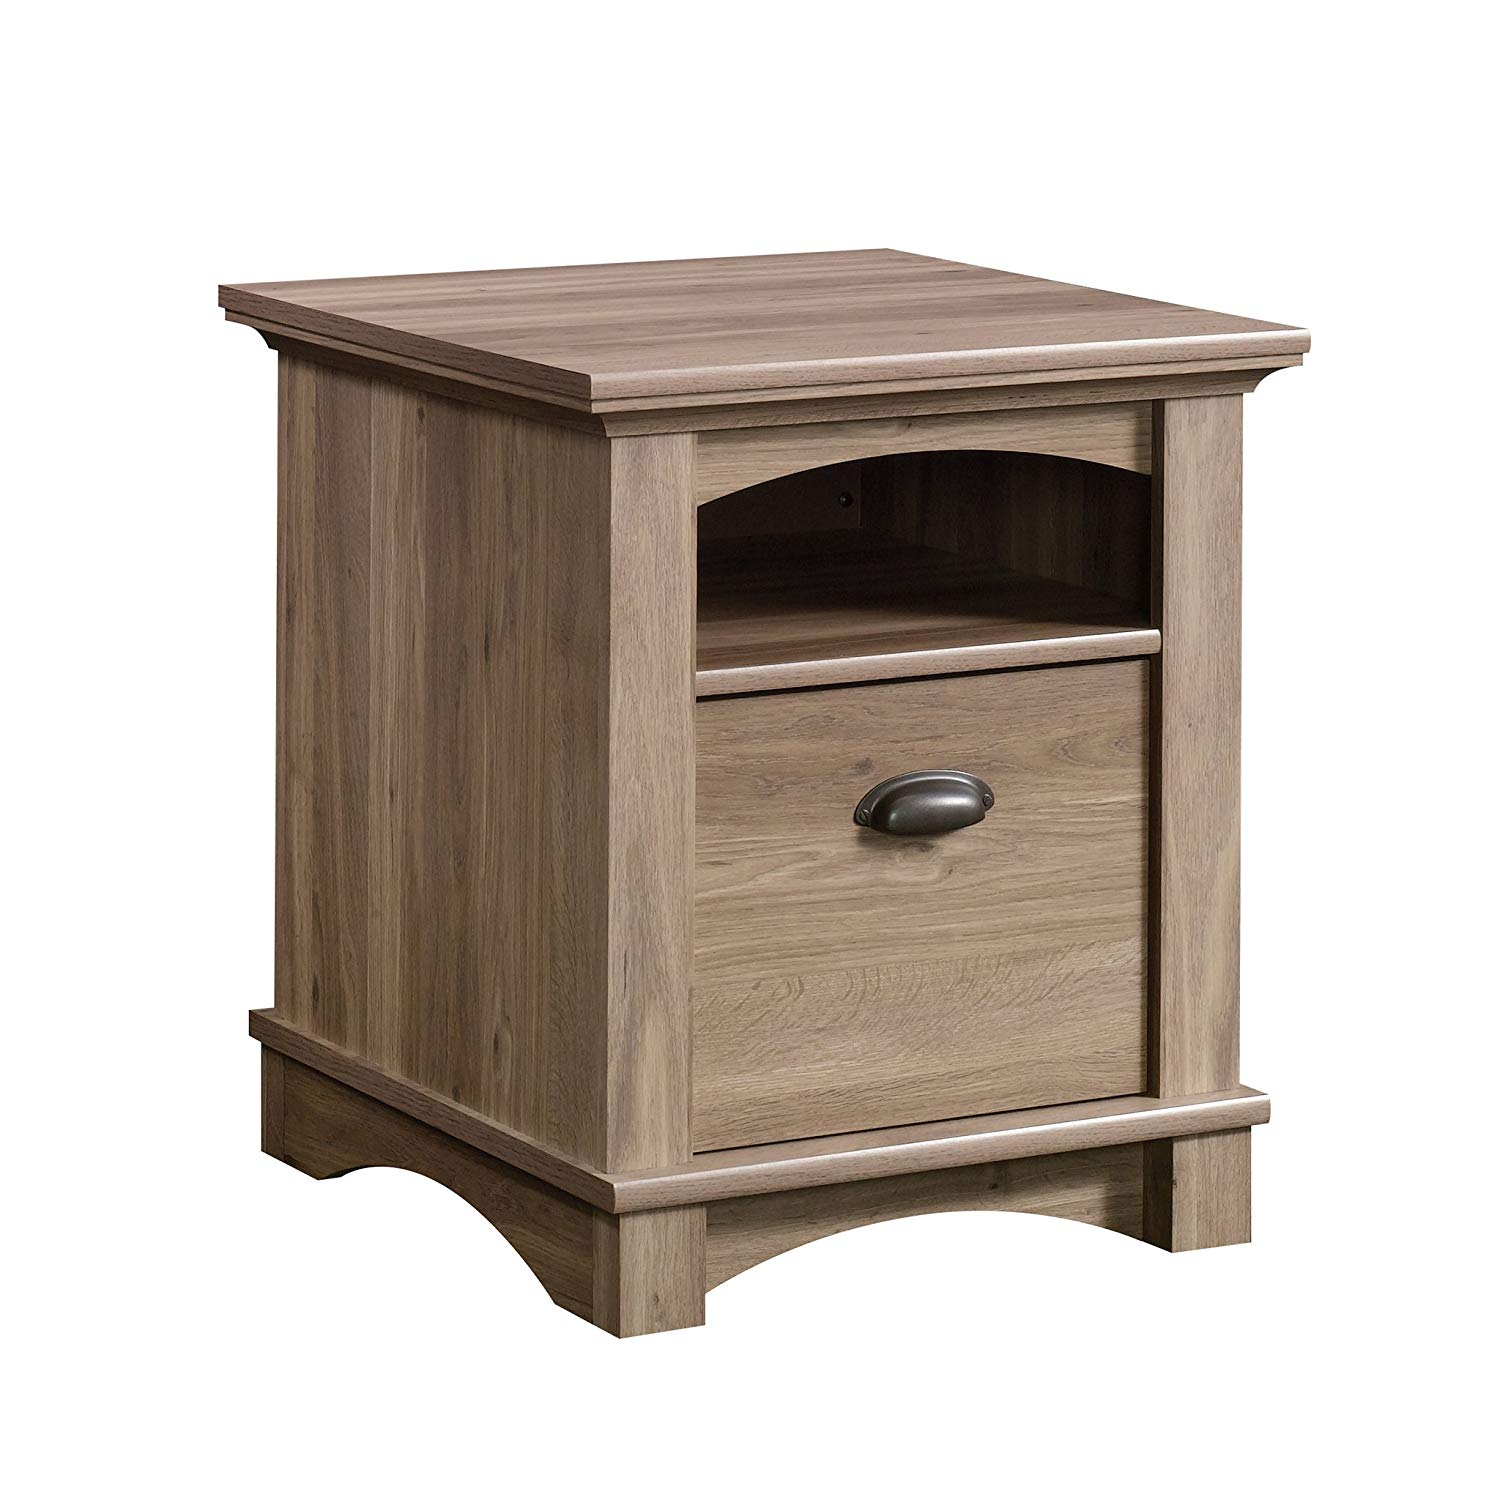 sauder harbor view side table accent with magazine holder salt oak finish kitchen dining garden and chairs clearance unique occasional tables battery touch lamp coastal lamps